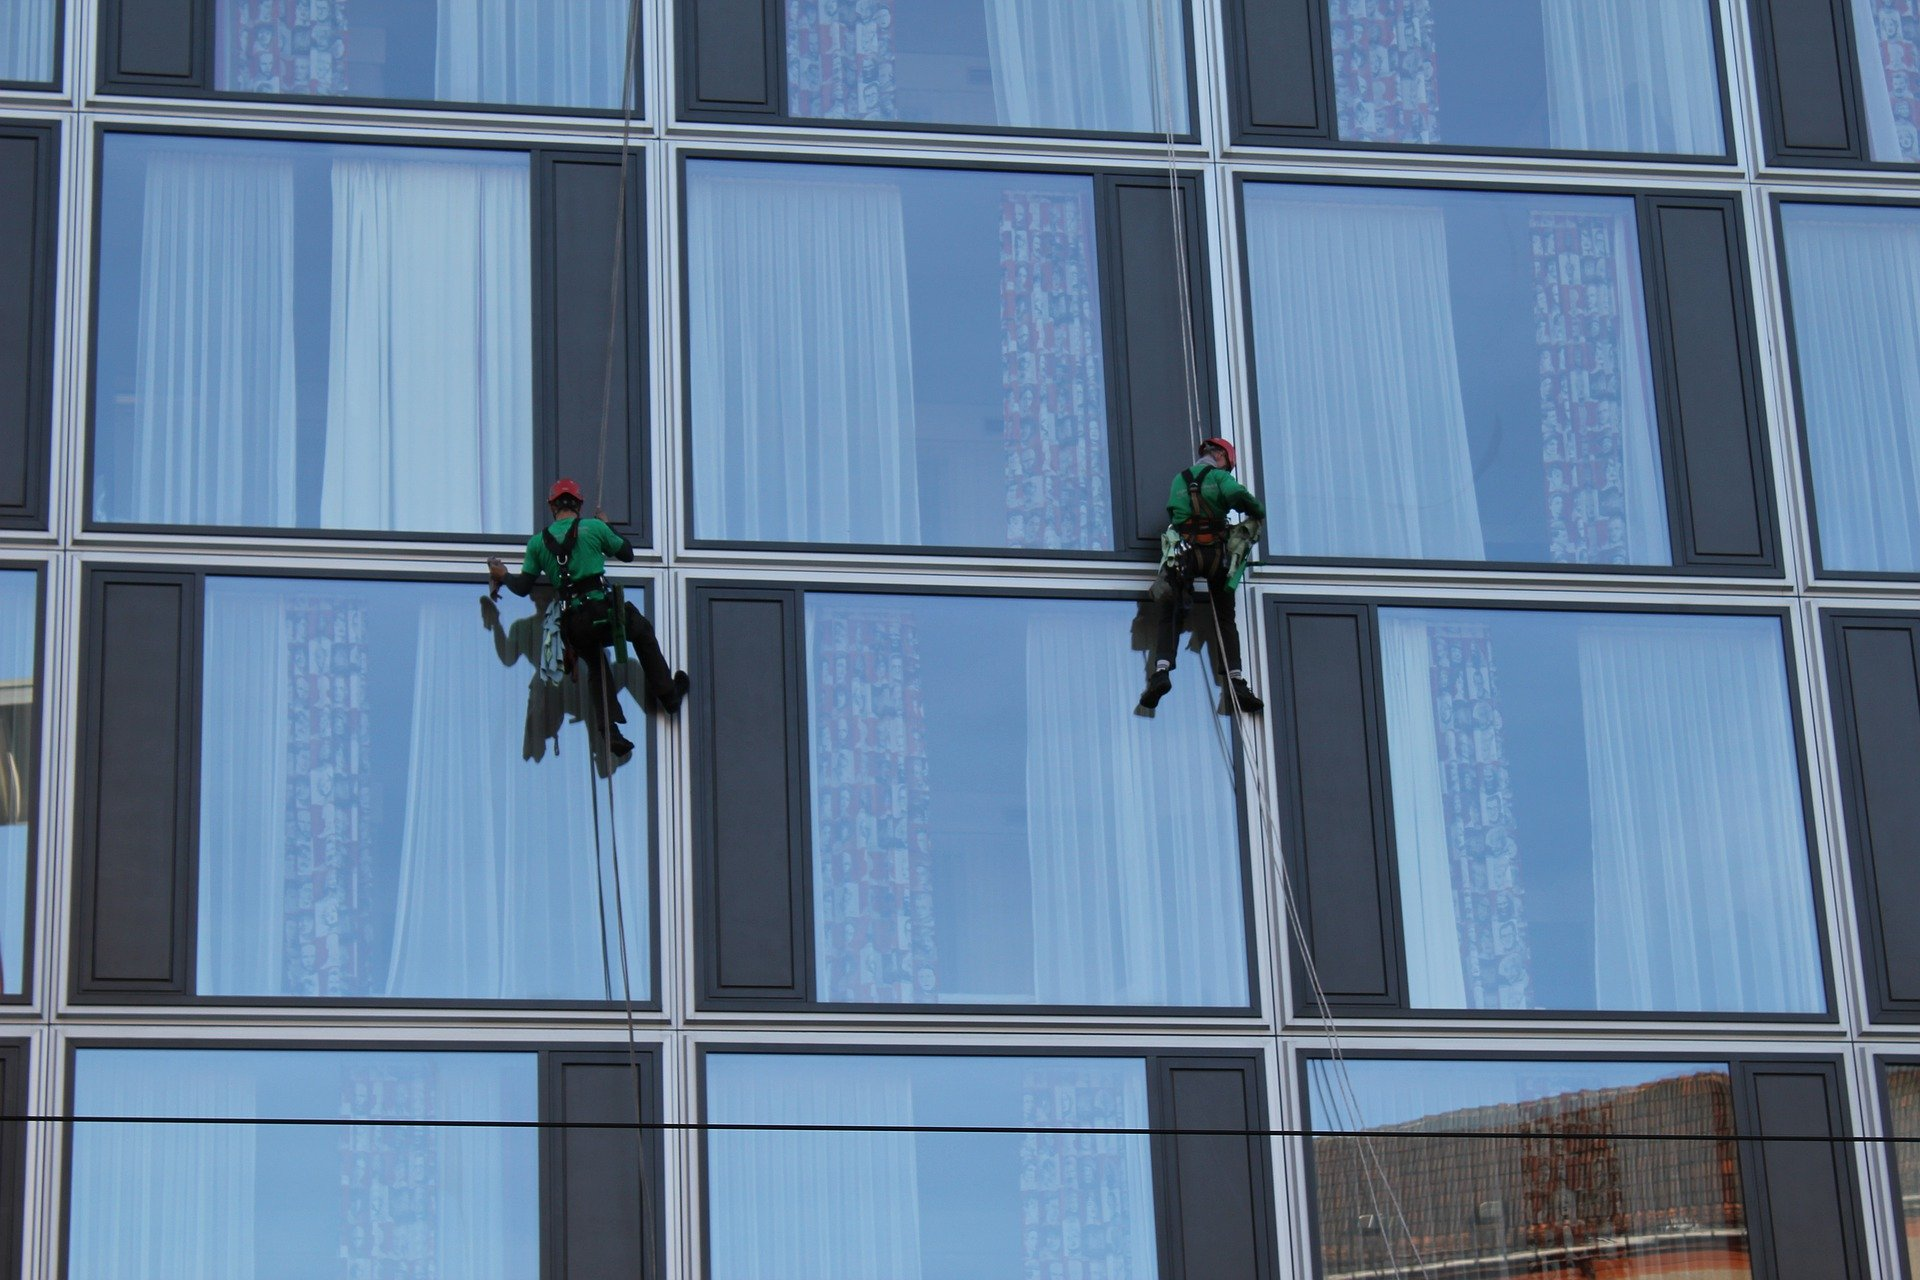 building-cleaner-4264144_1920